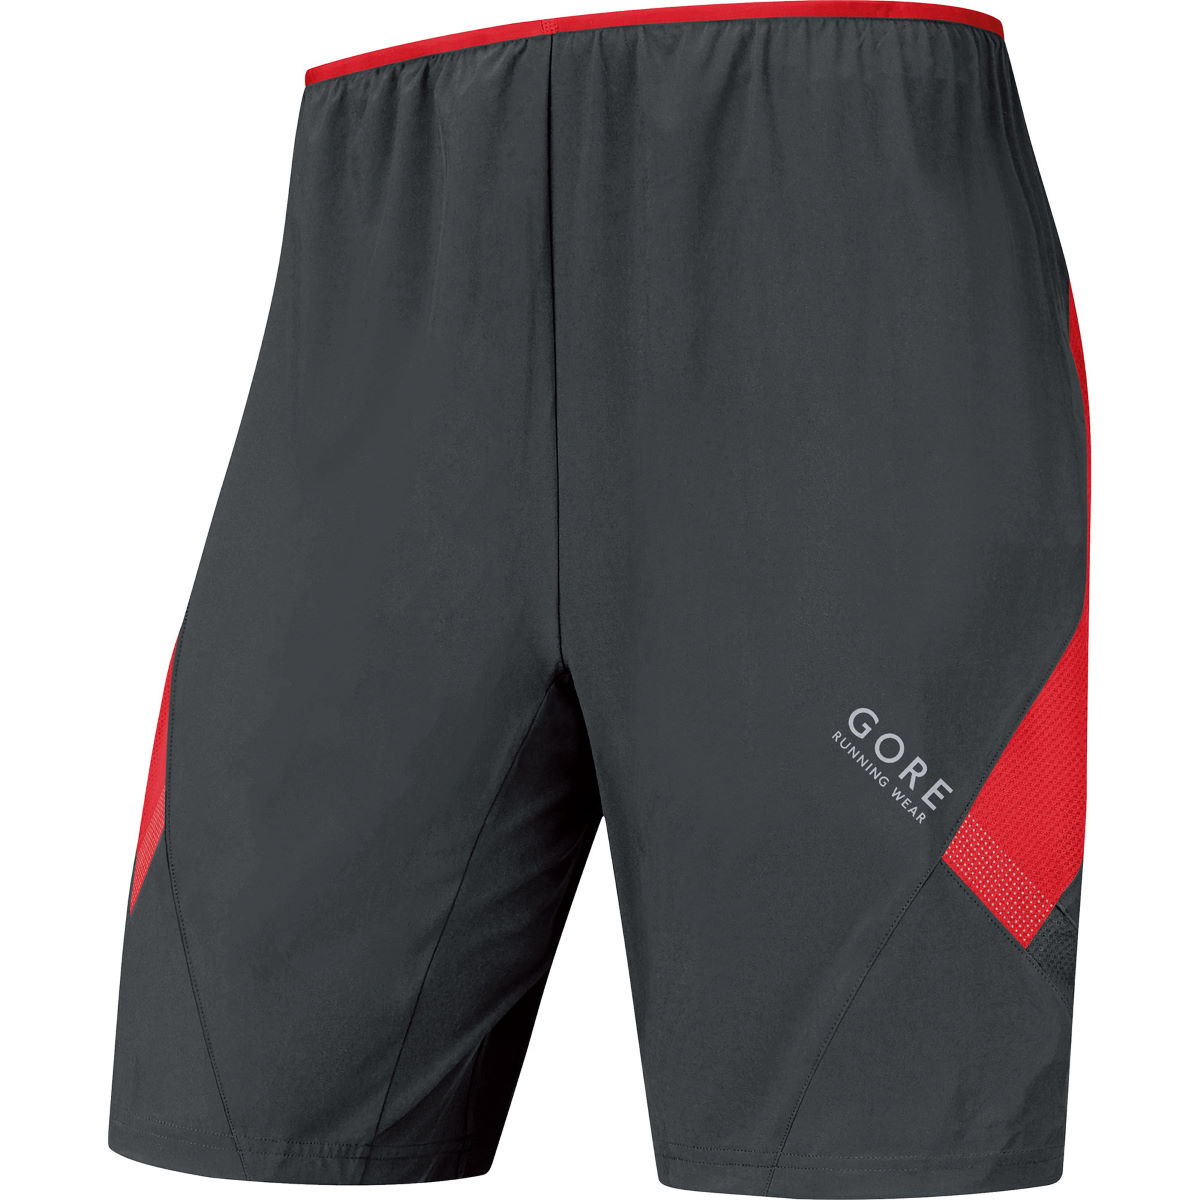 Short Gore Running Wear Air (2 en 1) - S black/red Shorts de running